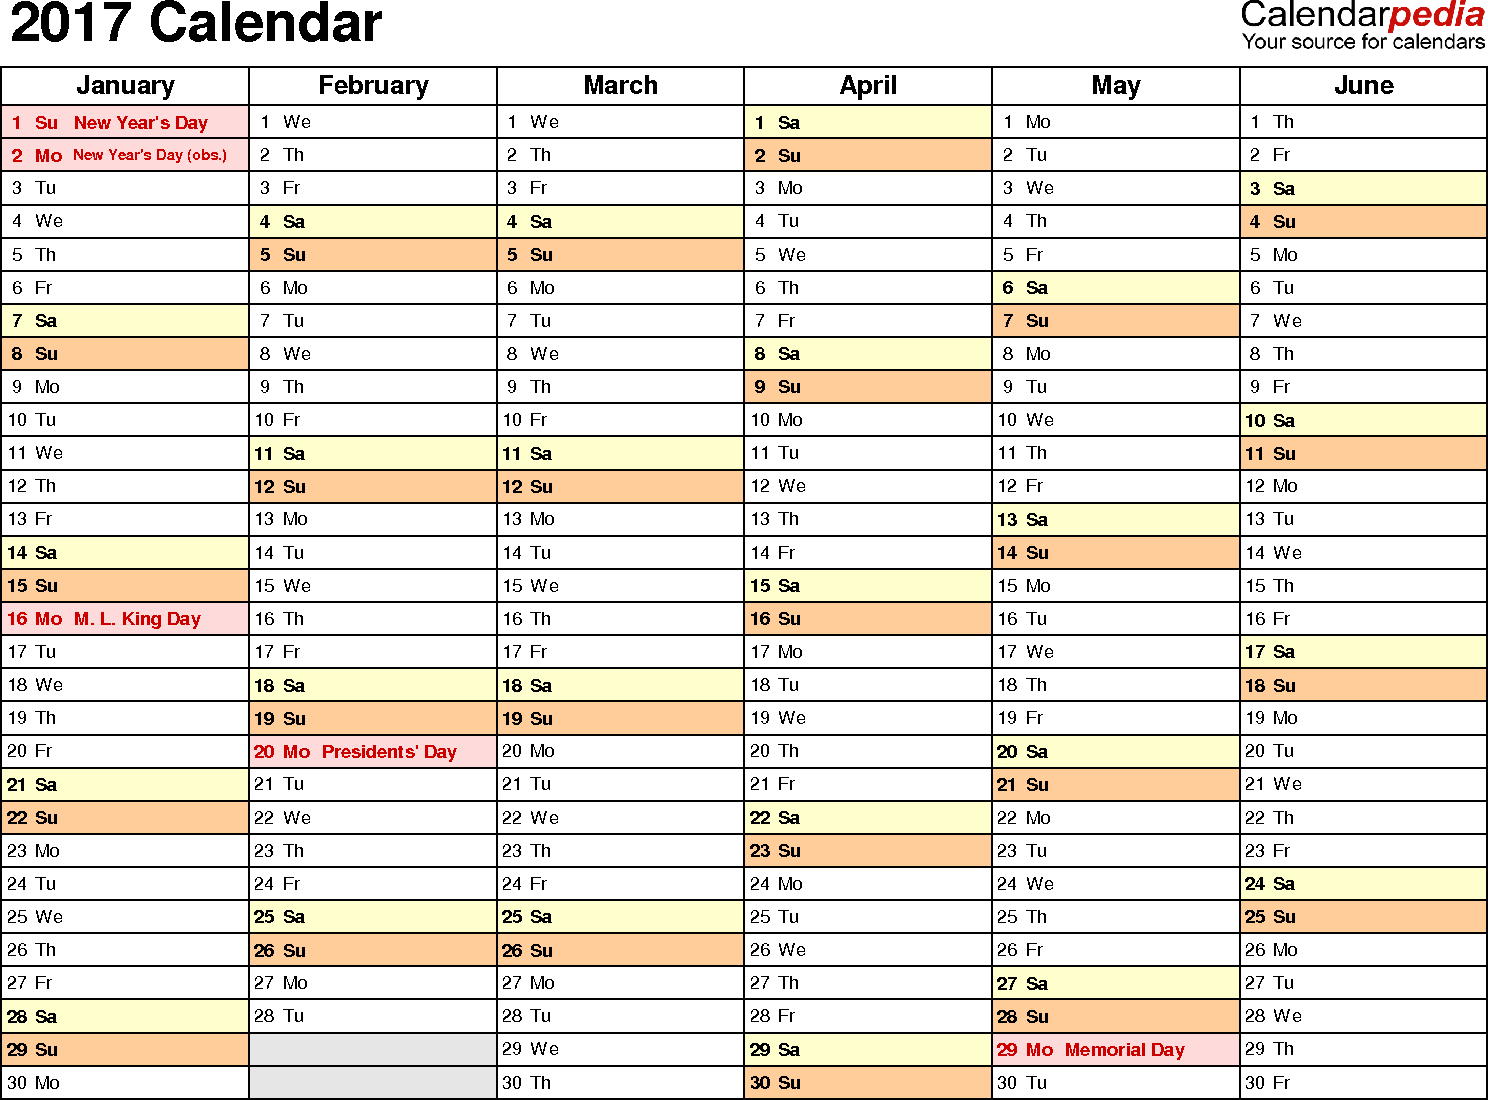 Ediblewildsus  Pleasant  Calendar  Download  Free Printable Excel Templates Xls With Interesting Template   Calendar For Excel Months Horizontally  Pages Landscape Orientation With Comely Online Free Excel Test Also Conjoint Analysis Excel In Addition Inventory Management Excel Template Free Download And Lessons Learned Template Excel As Well As Pivot Table Formula In Excel Additionally What Is Accounting Number Format In Excel From Calendarpediacom With Ediblewildsus  Interesting  Calendar  Download  Free Printable Excel Templates Xls With Comely Template   Calendar For Excel Months Horizontally  Pages Landscape Orientation And Pleasant Online Free Excel Test Also Conjoint Analysis Excel In Addition Inventory Management Excel Template Free Download From Calendarpediacom